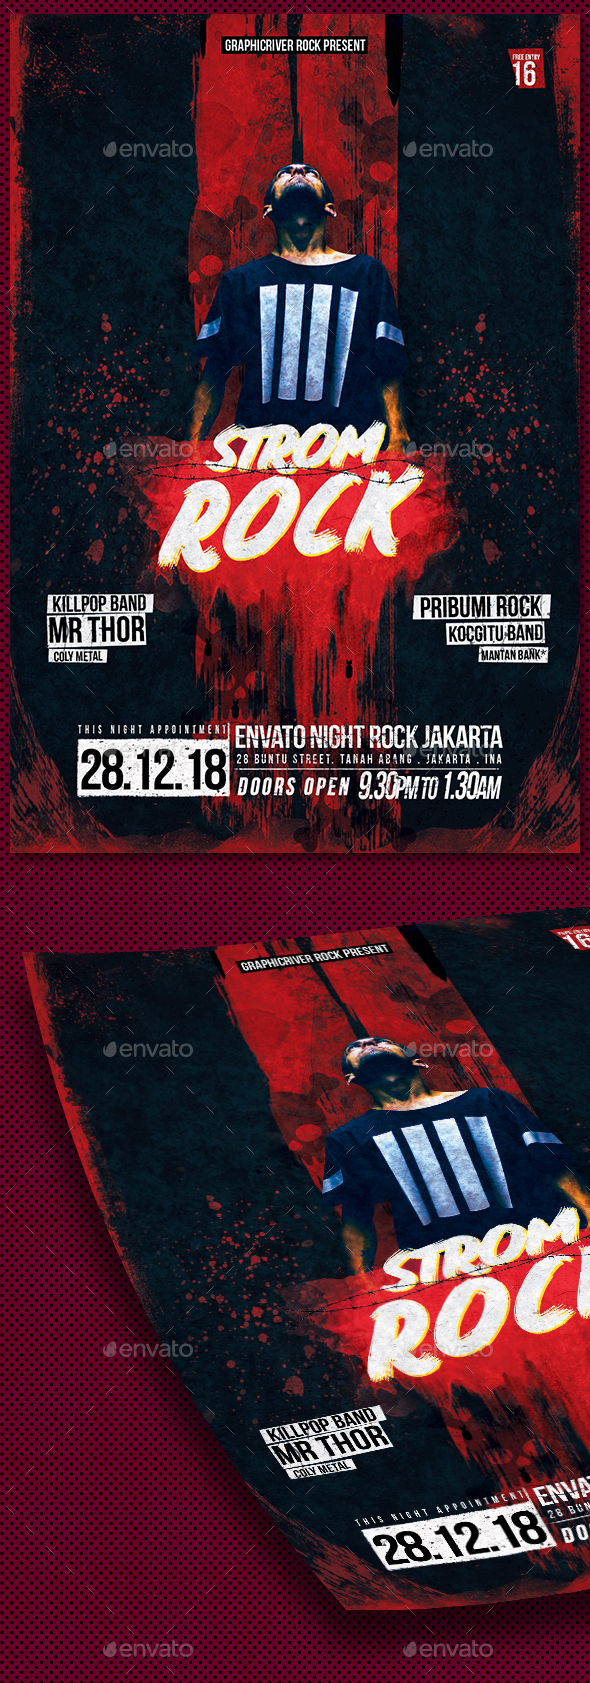 Strom Rock Concert Flyer - Concerts Events